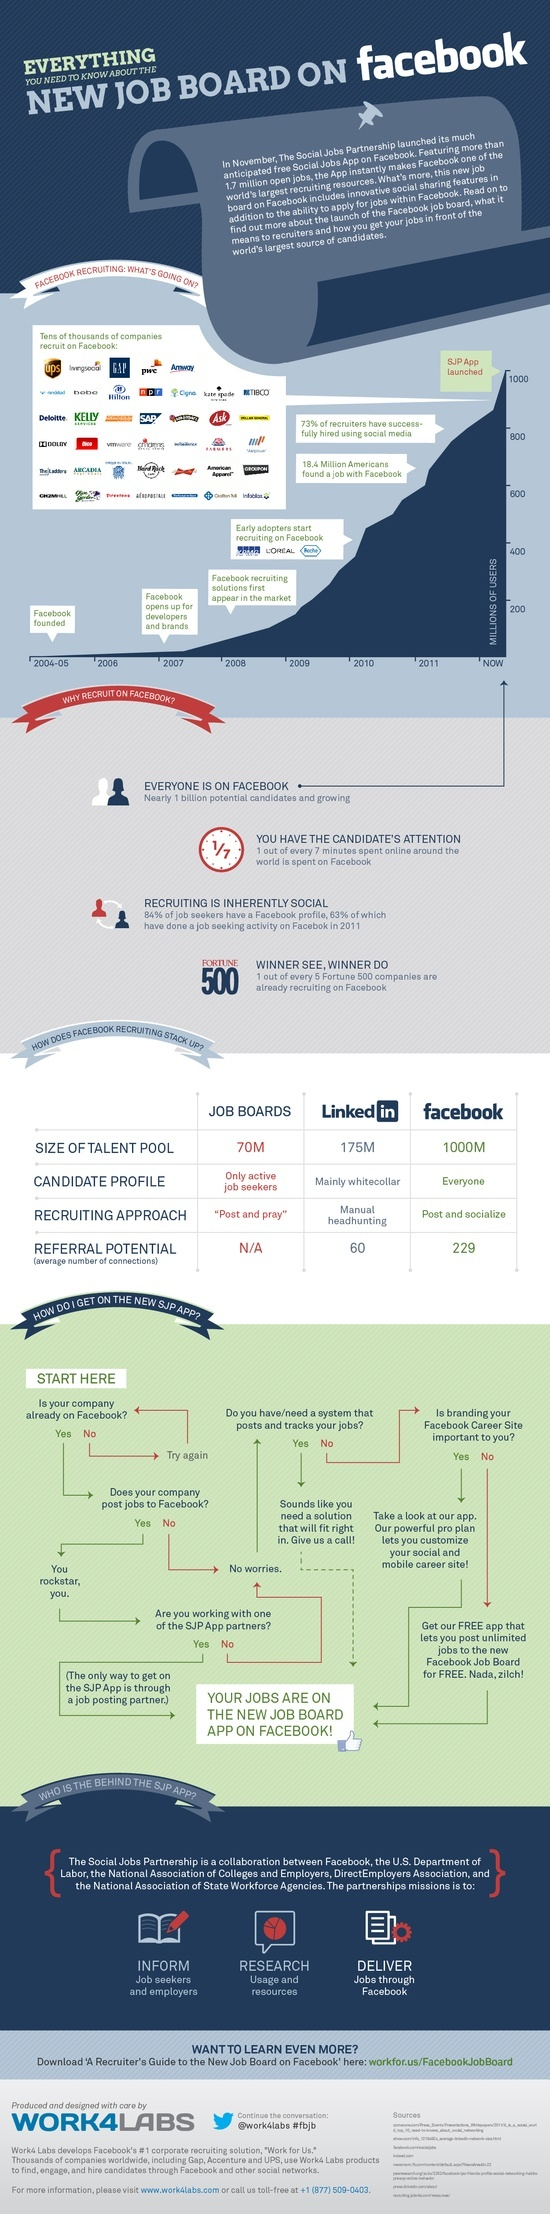 Everything you need to know about the new job board on Facebook #JobSearch #Infographic